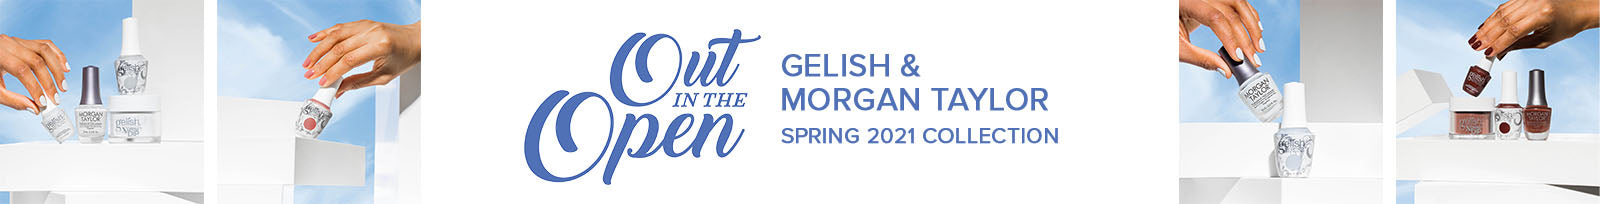 Gelish & Morgan Taylor Out In The Open Collection